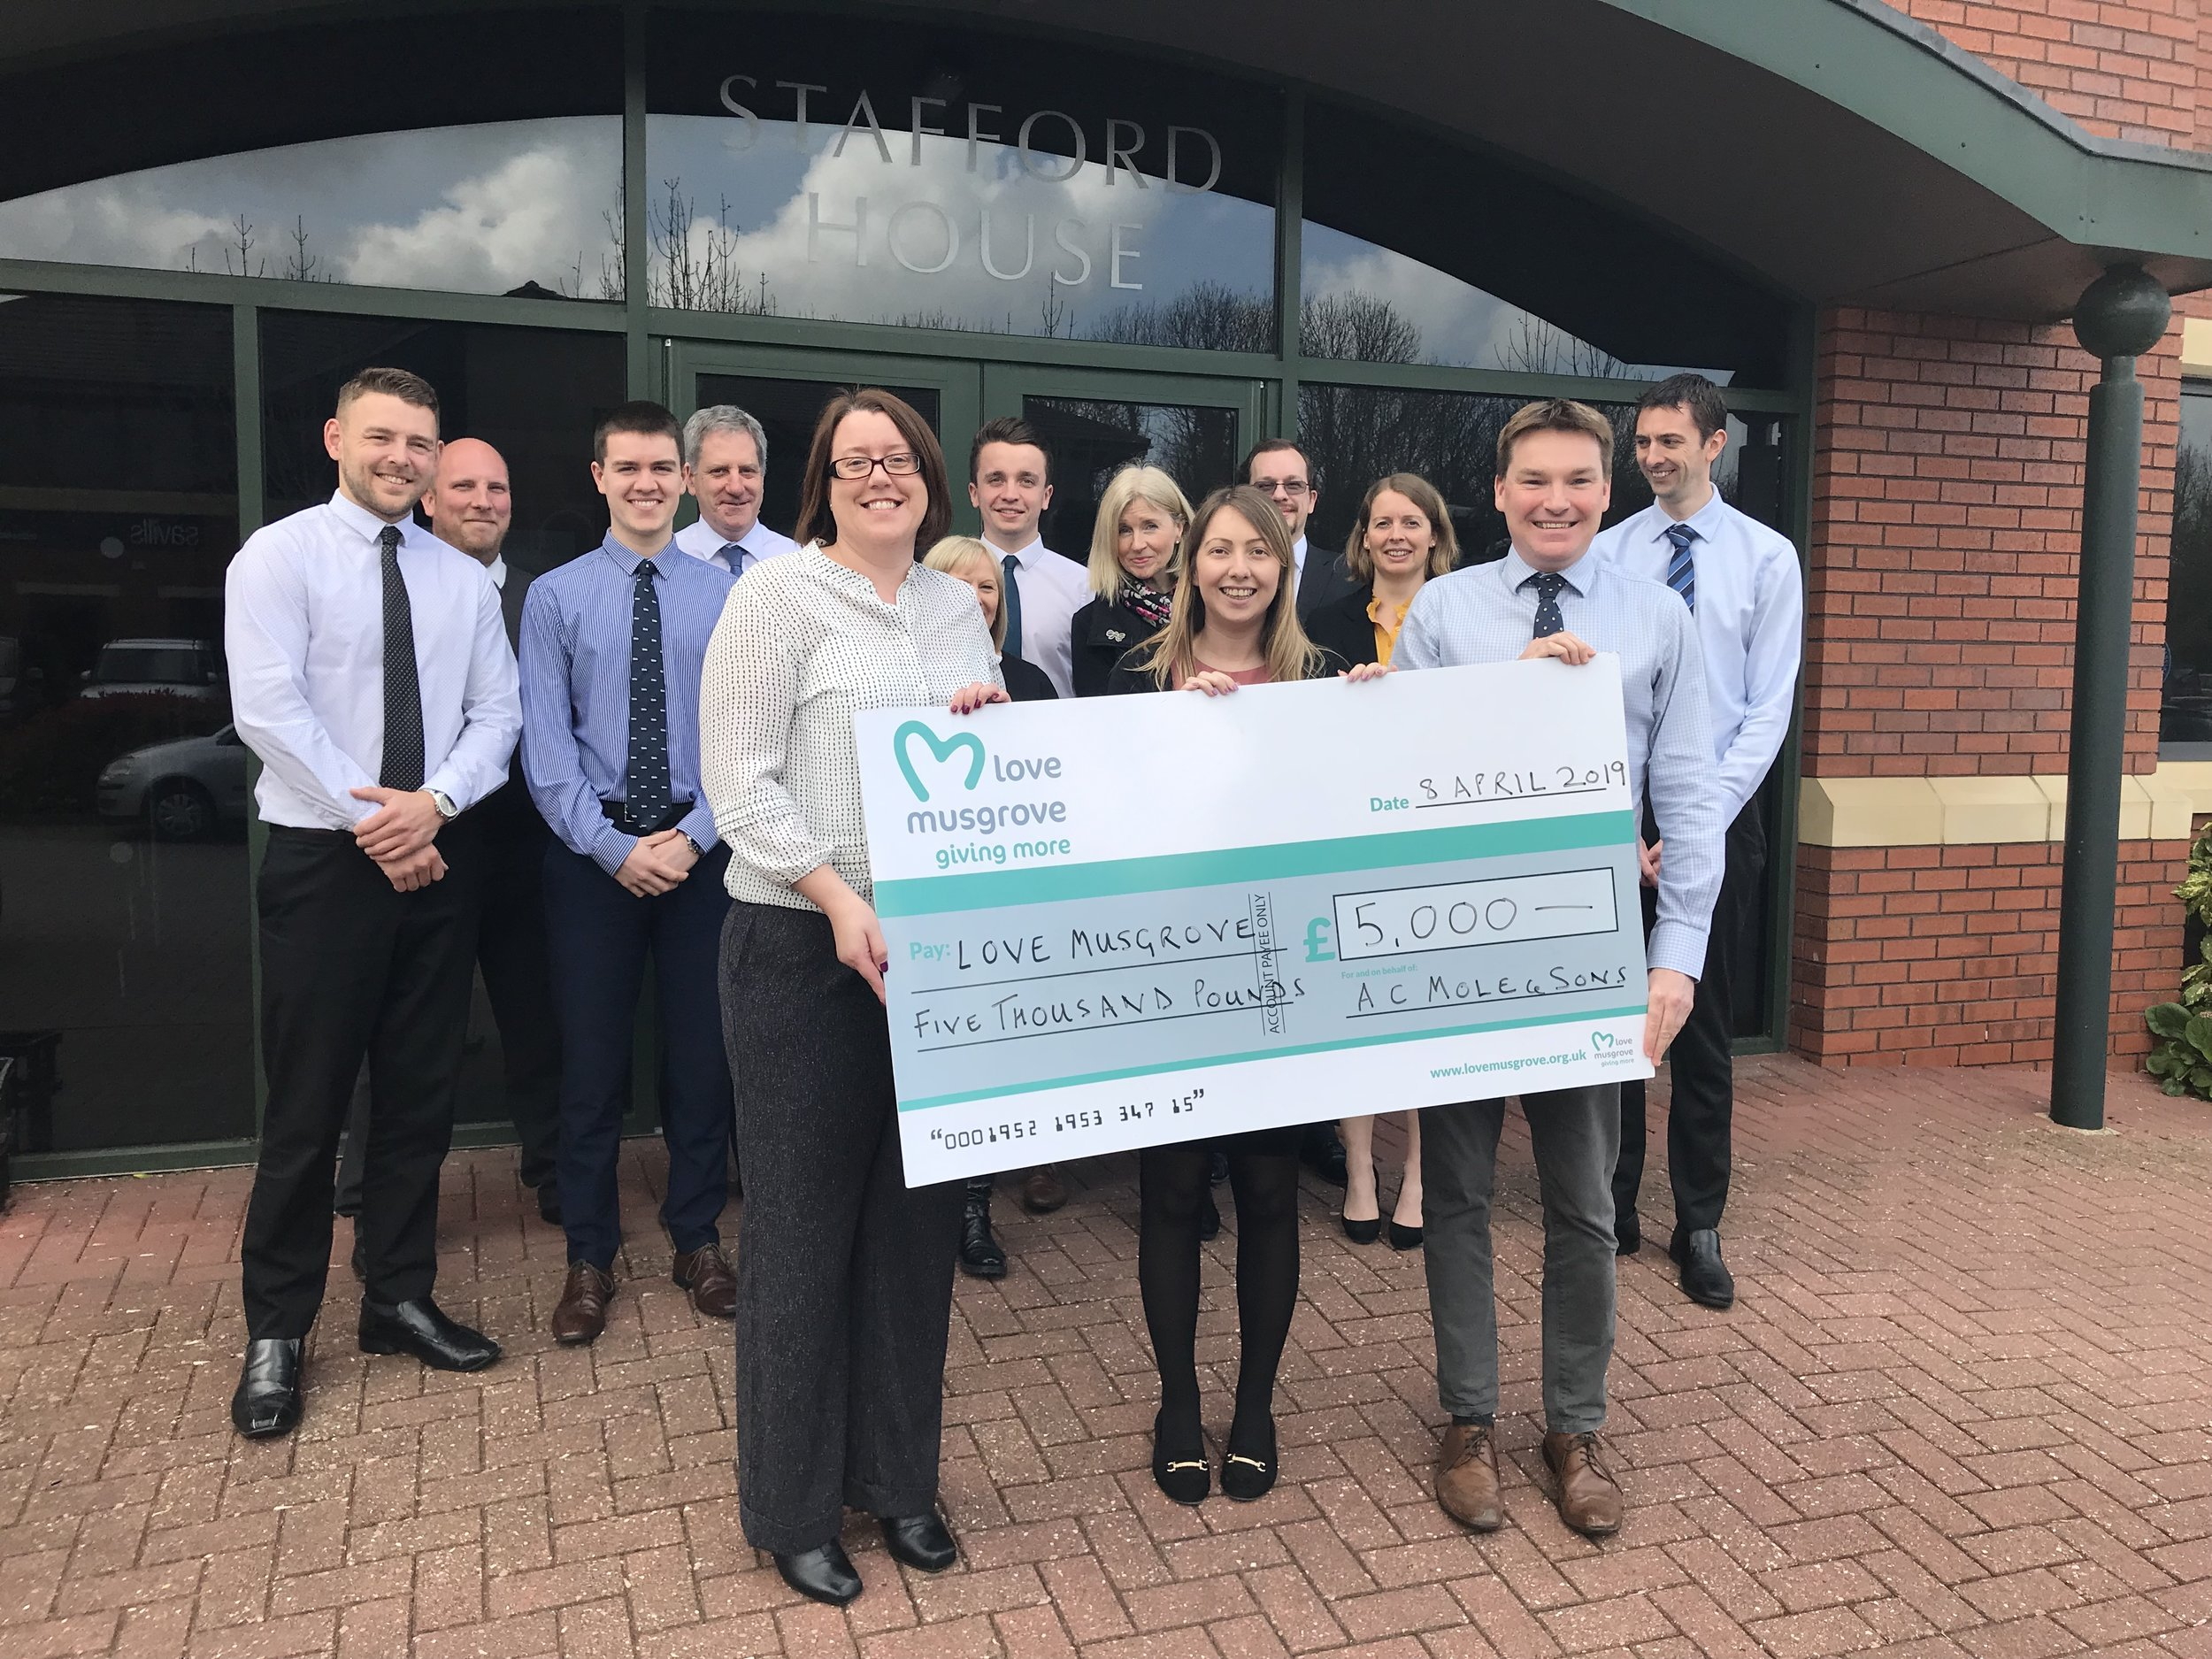 AC Mole & Sons raised £5,000 for Love Musgrove in 2018.